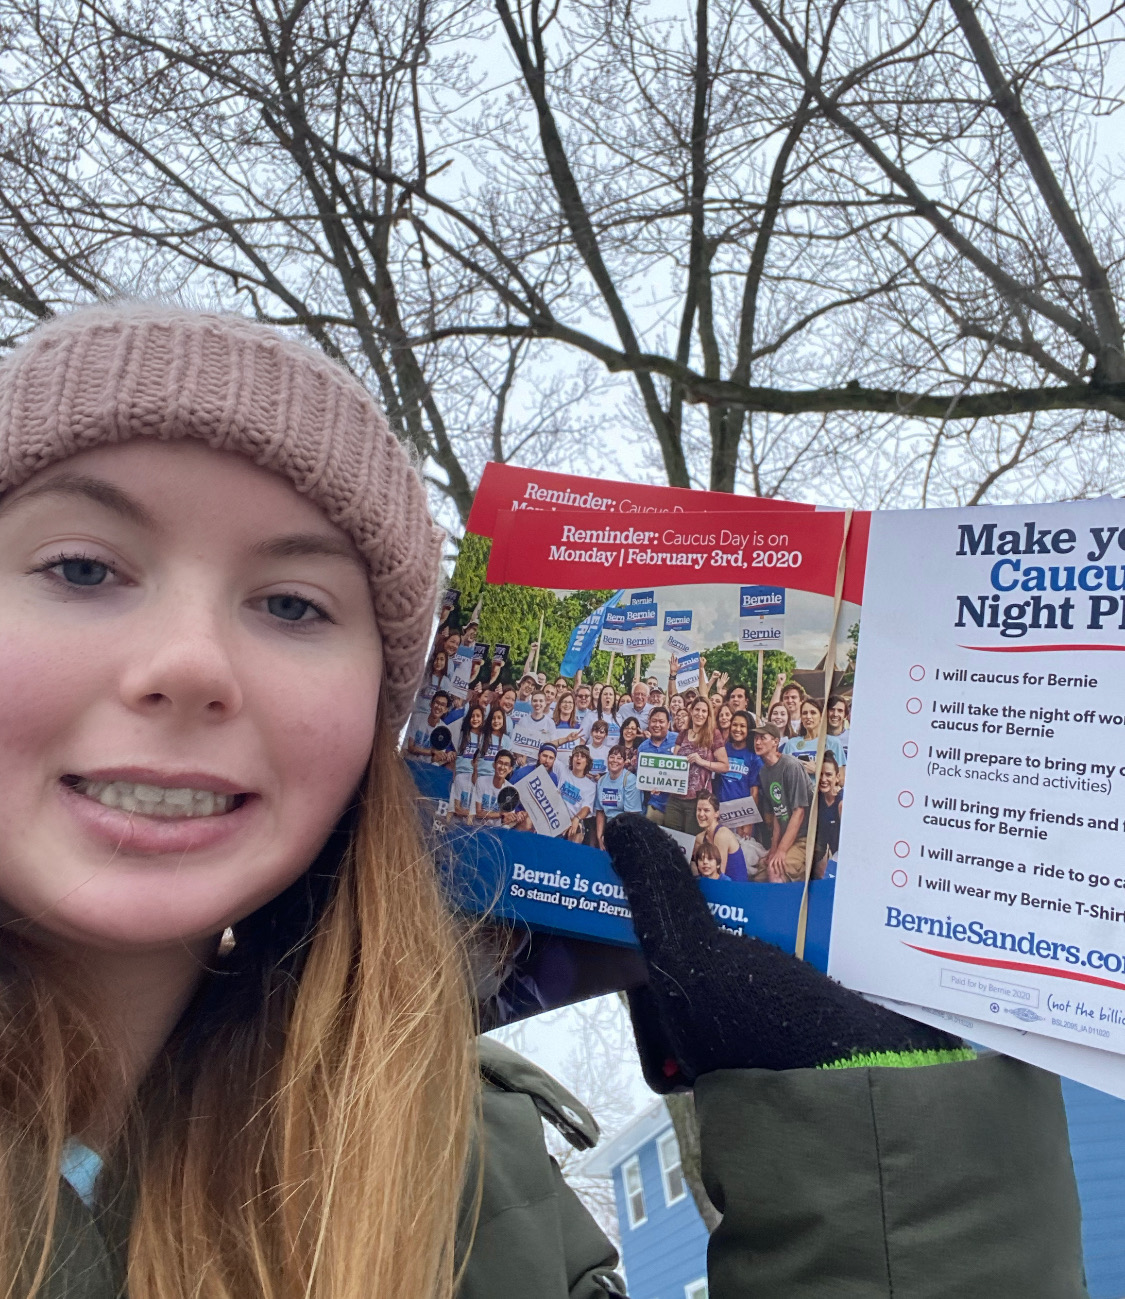 Amy Oberhart attempts to rally potential caucus voters in support of Bernie Sanders by travelling through local neighborhoods.